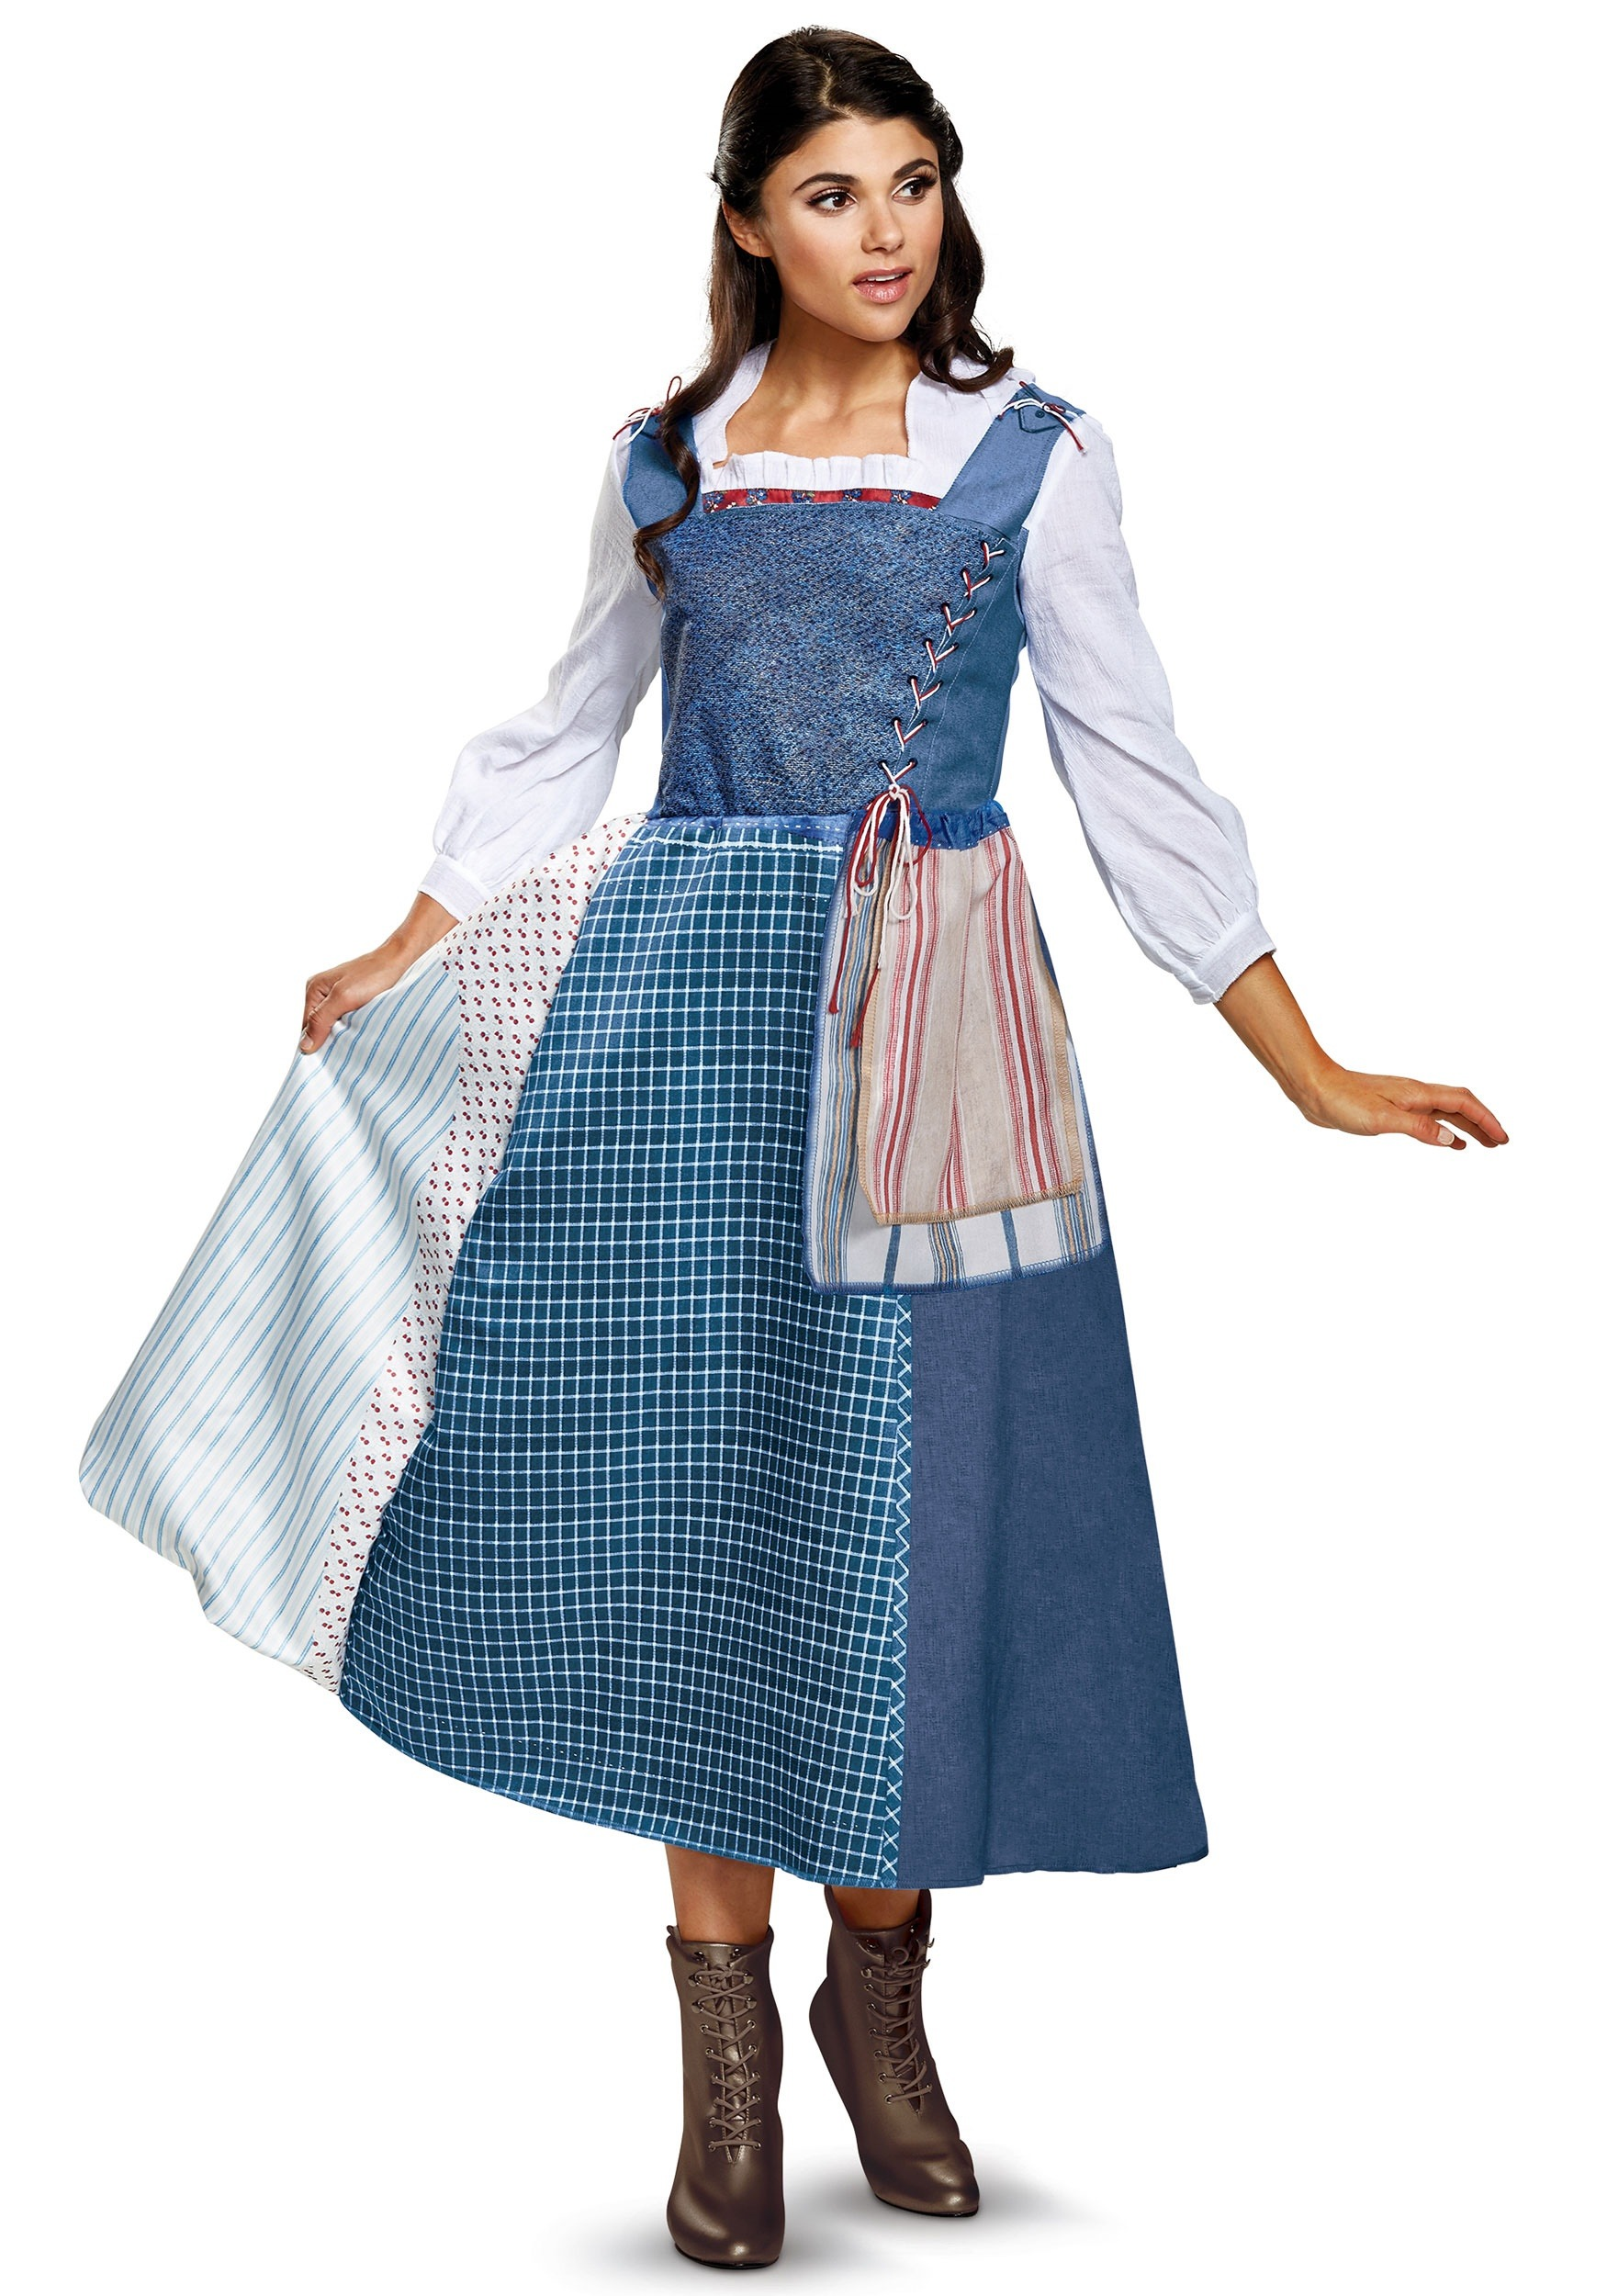 Disney Costumes - Disney Princess and Movie Costume